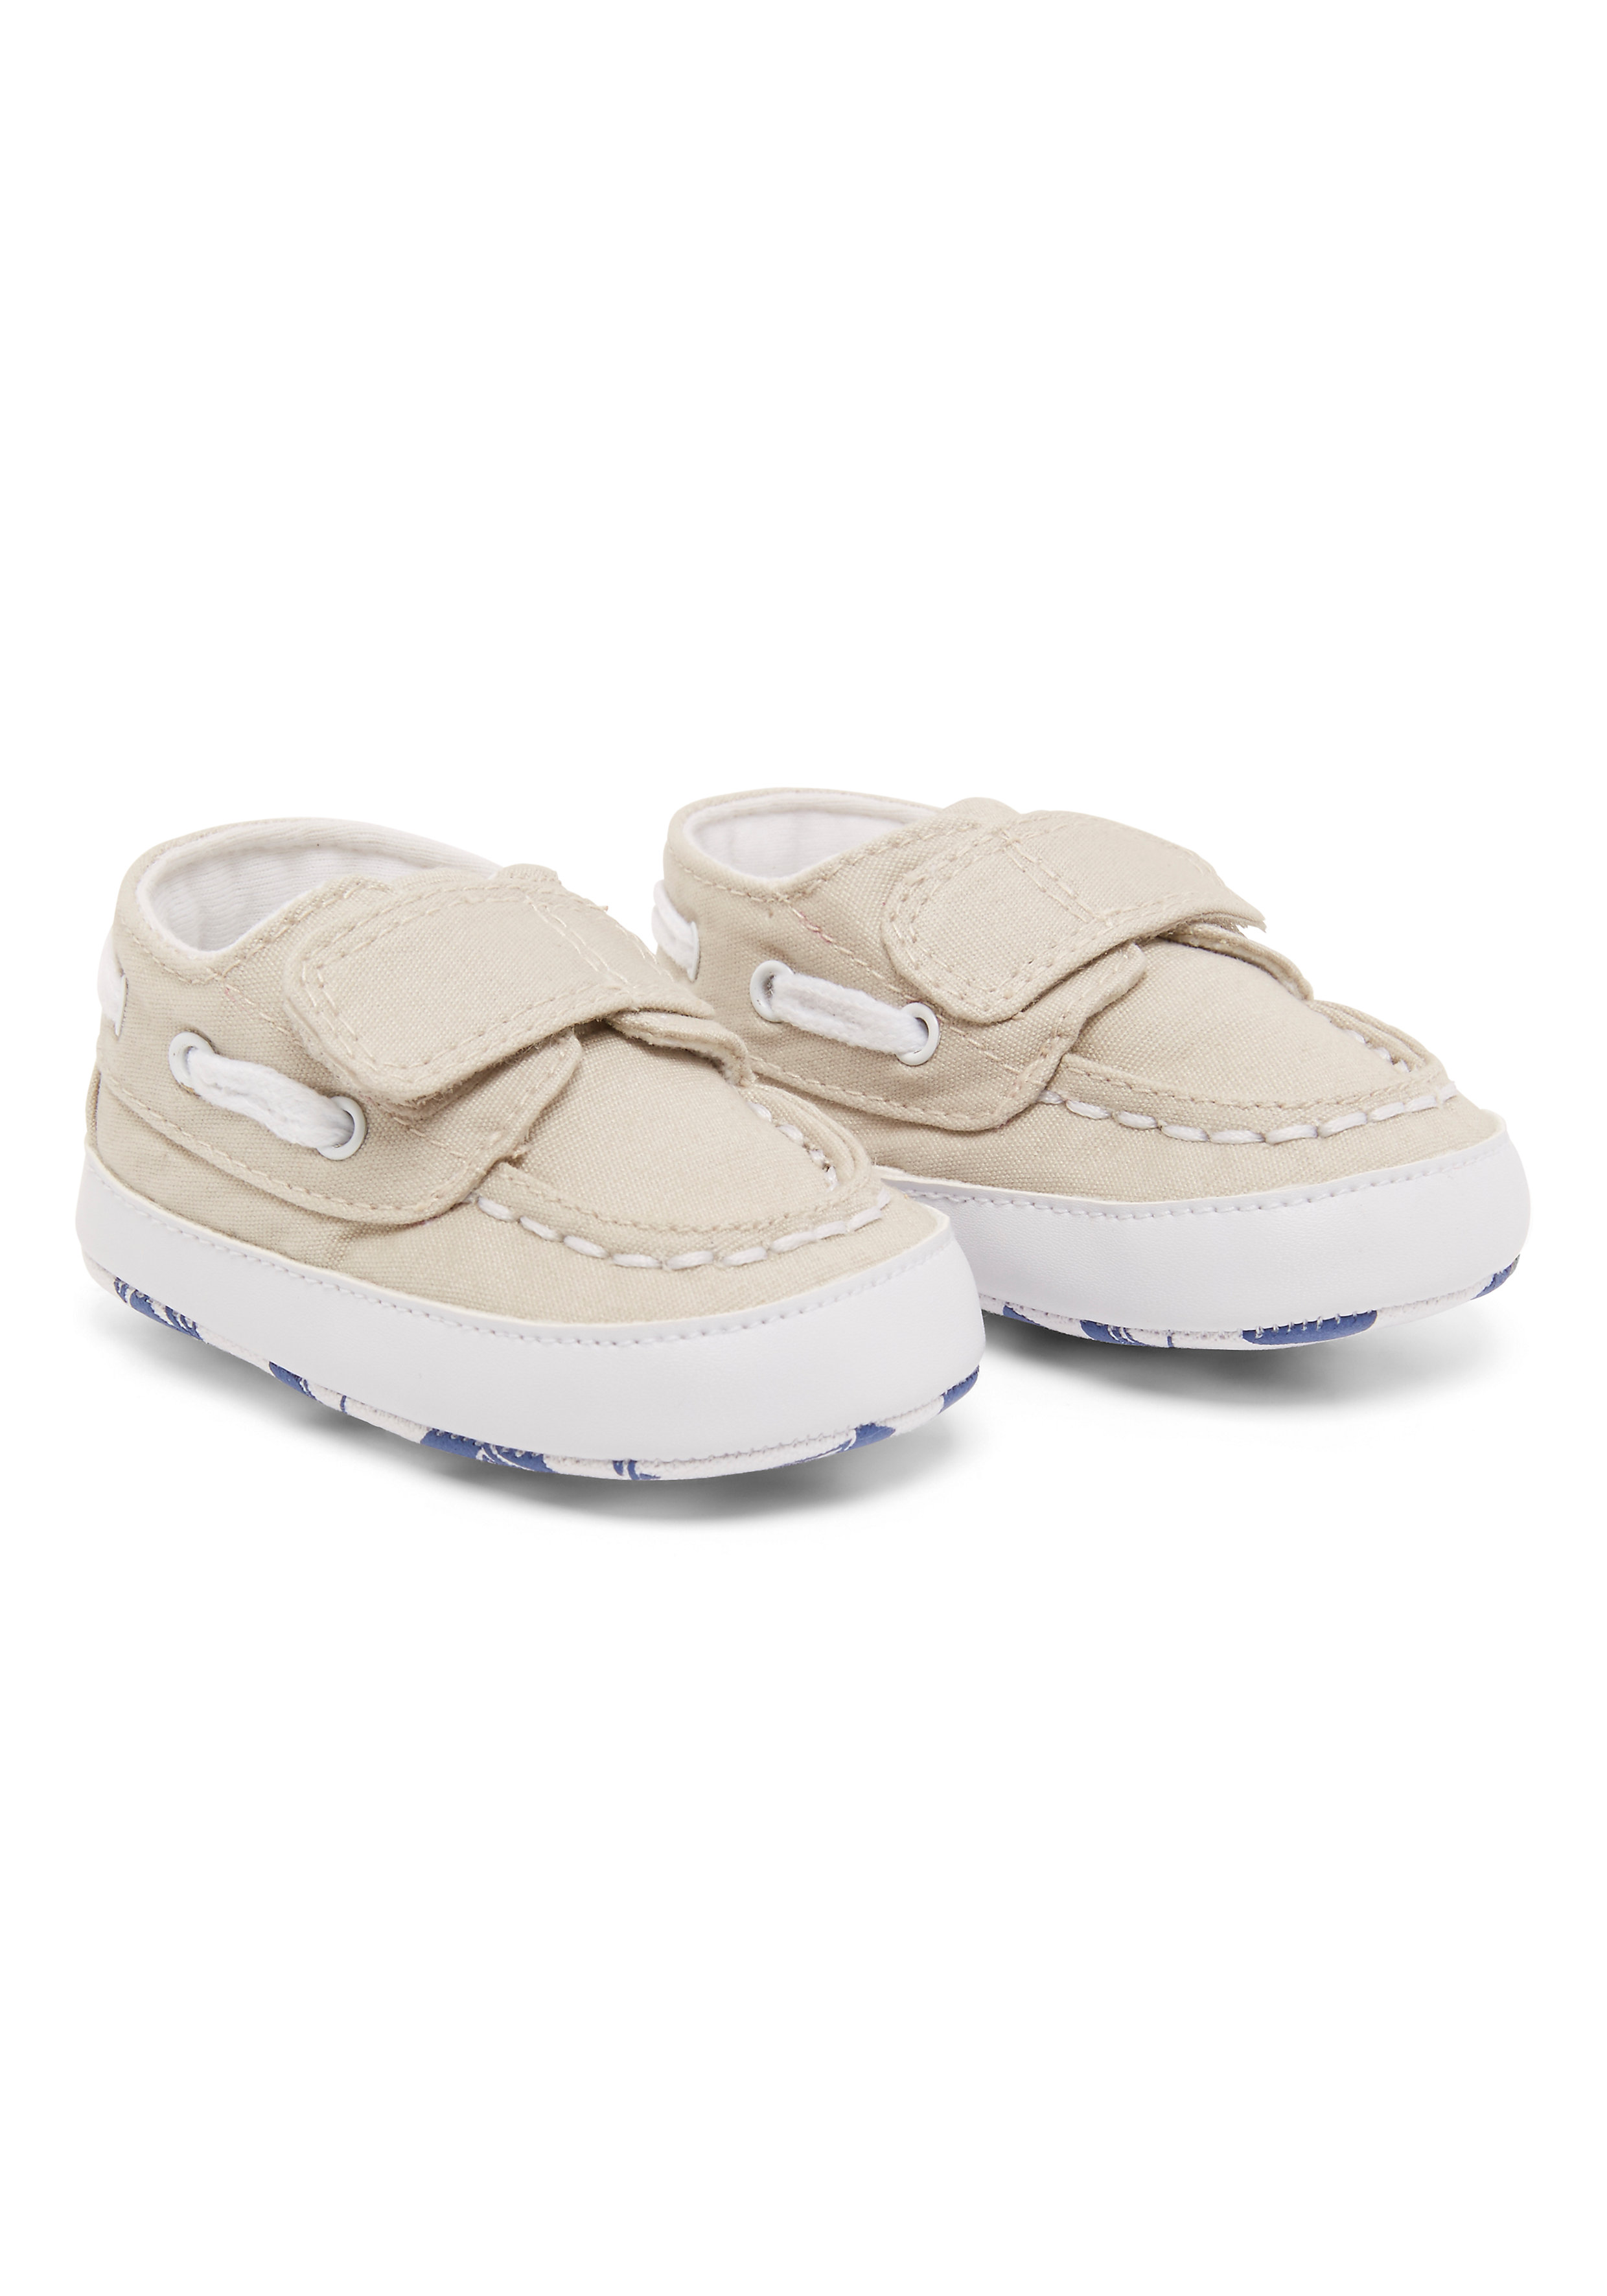 Mothercare   Boys Boat Shoes - Beige